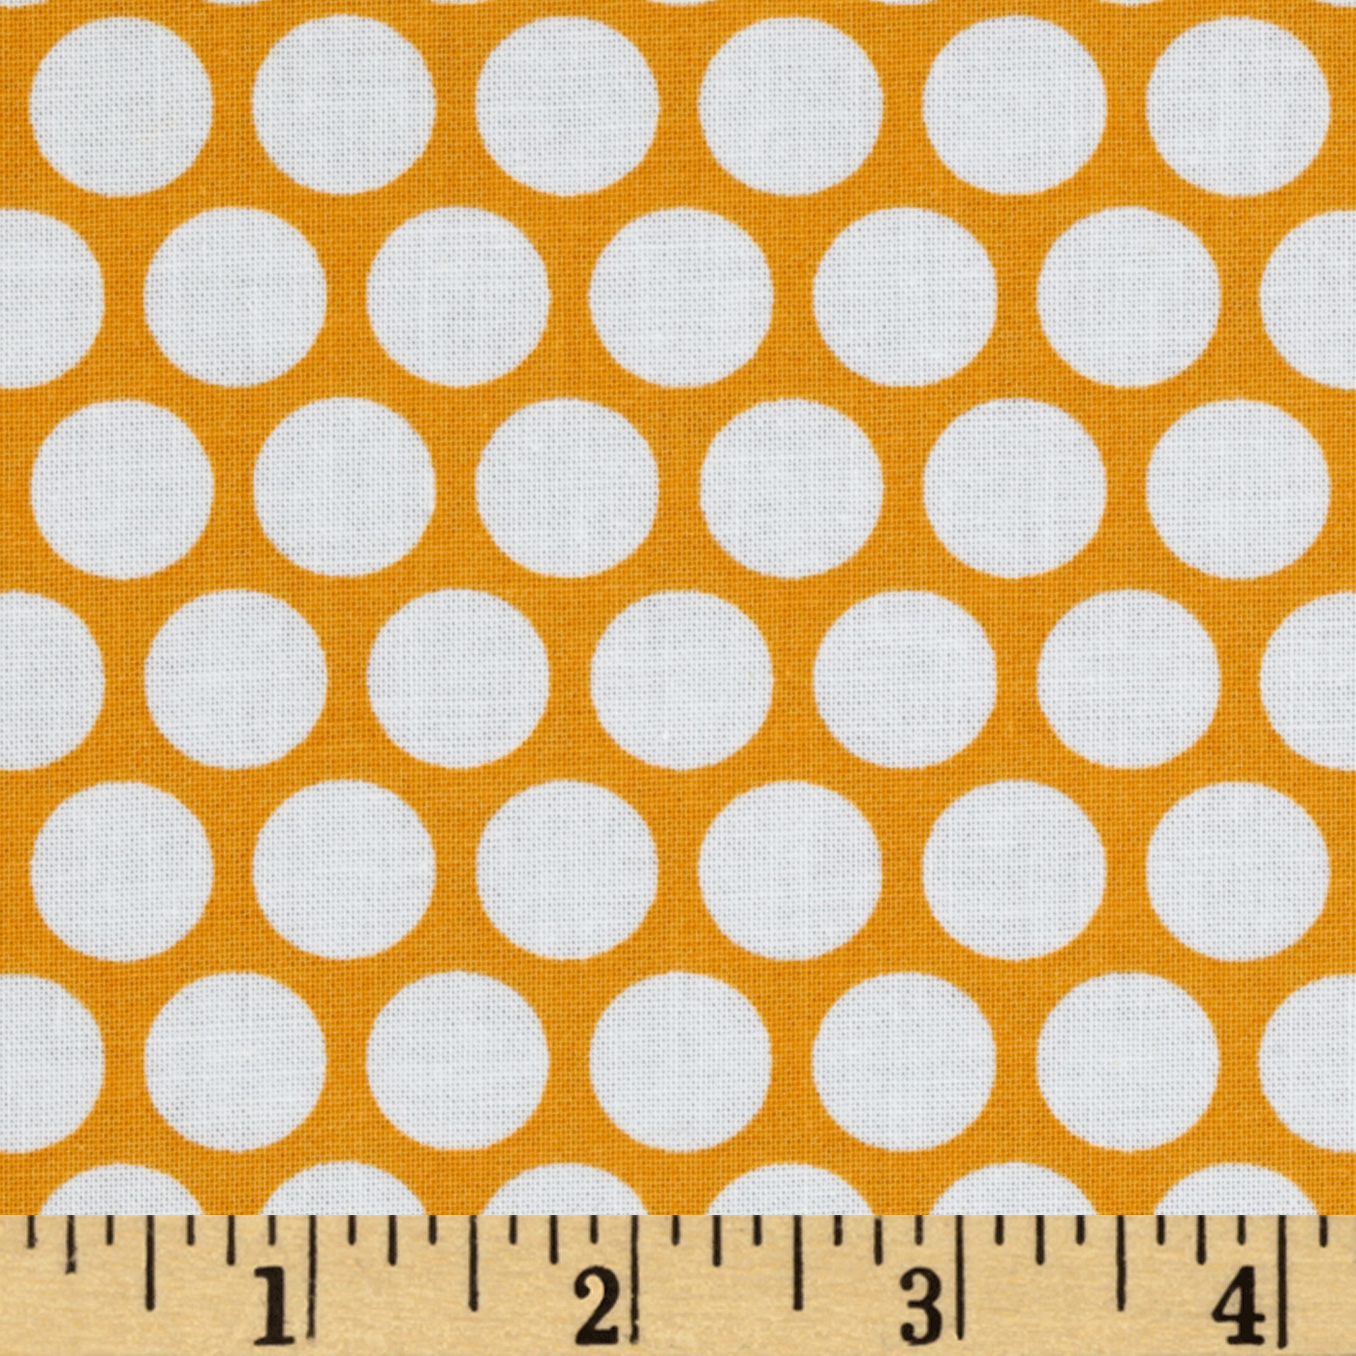 Quiltologie Polka Dot Orange